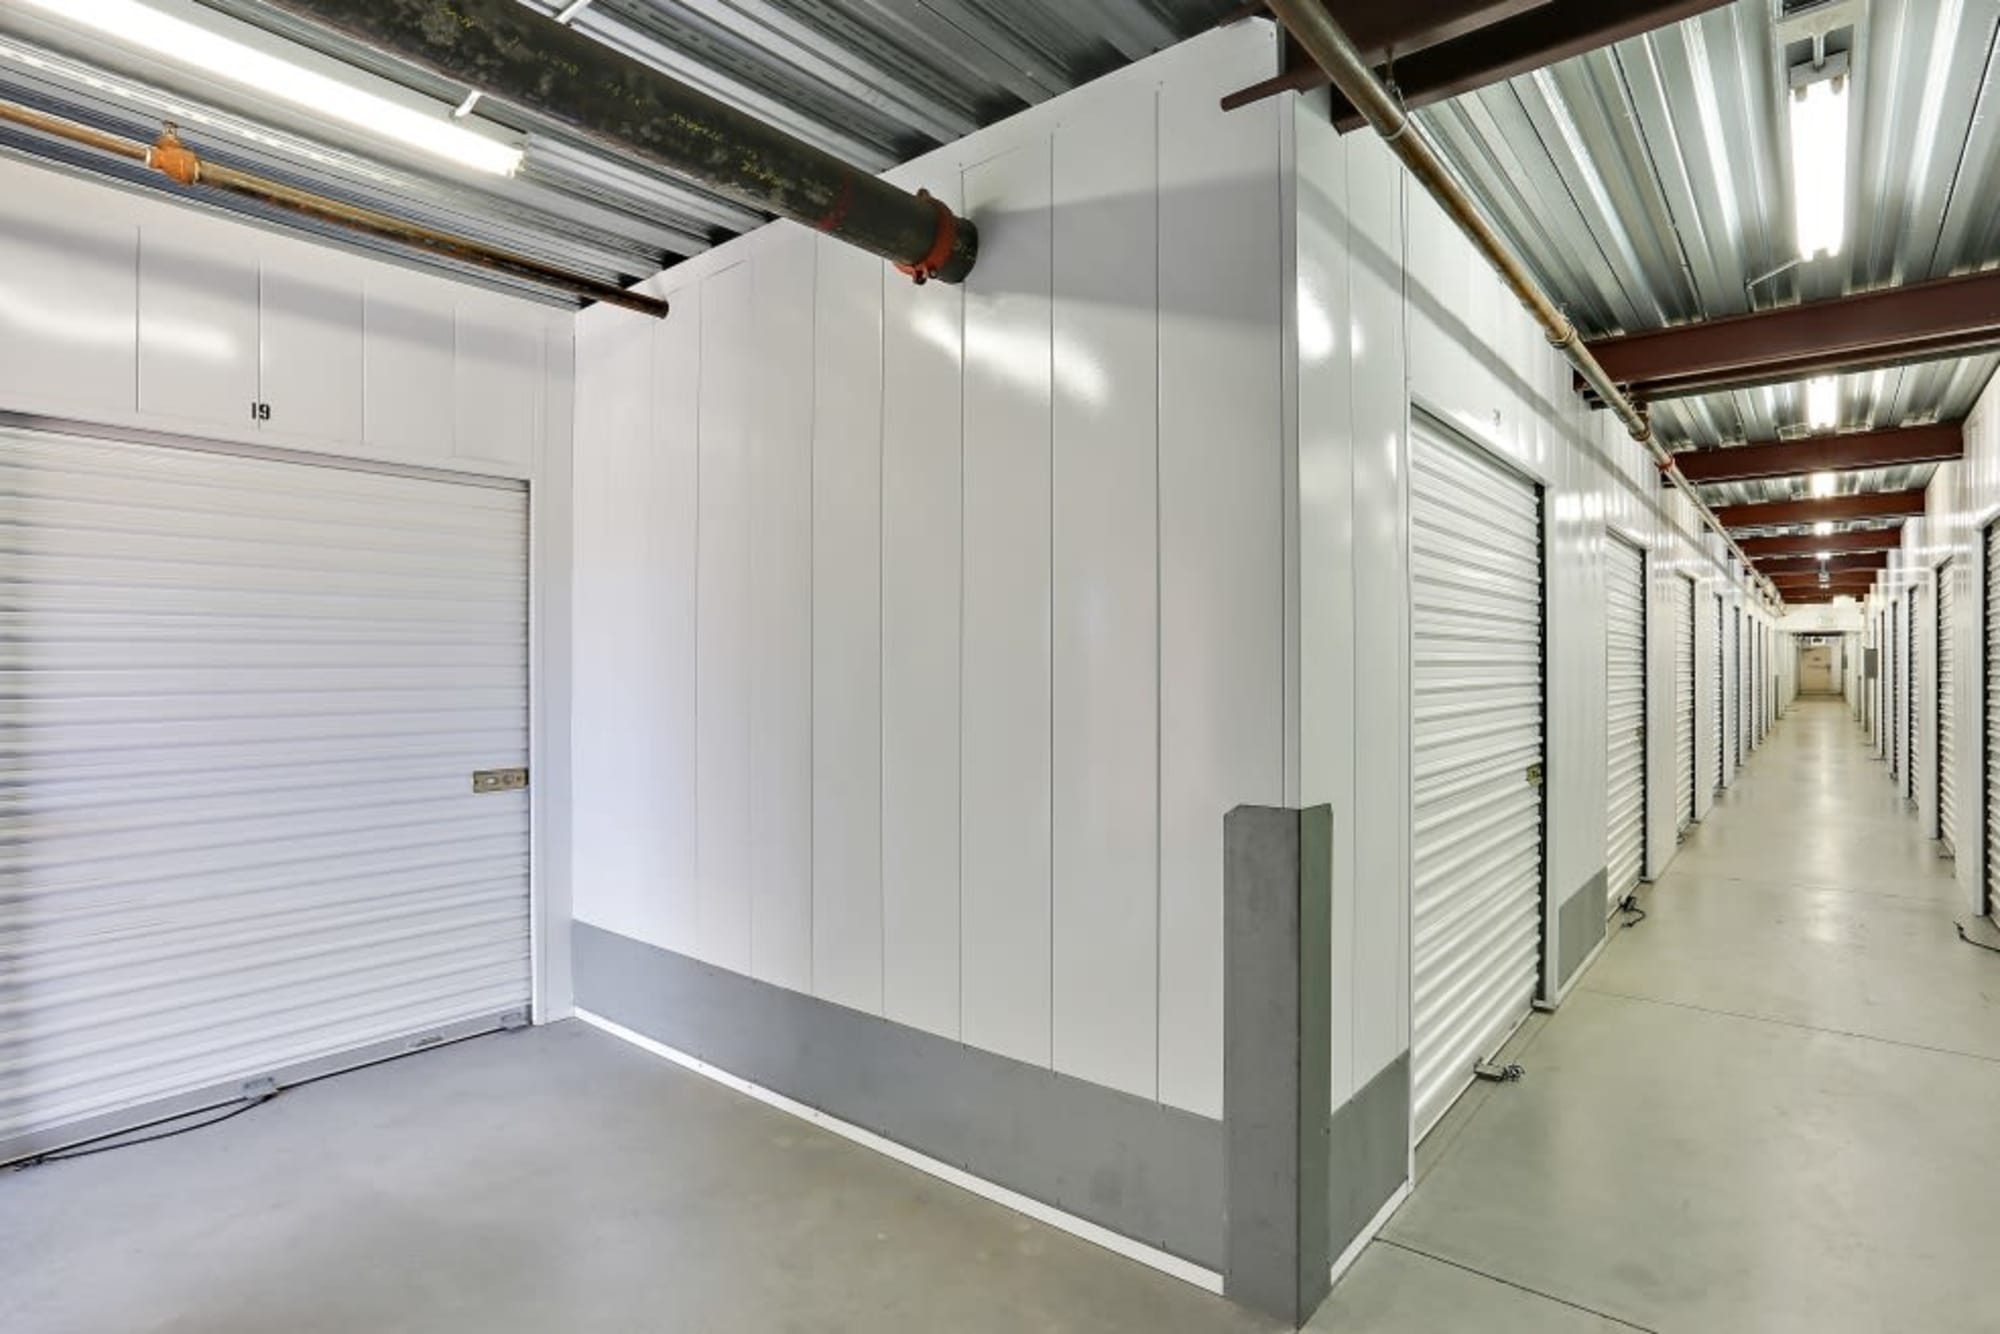 Indoor storage and a convenient elevator at A-1 Self Storage in San Diego, California